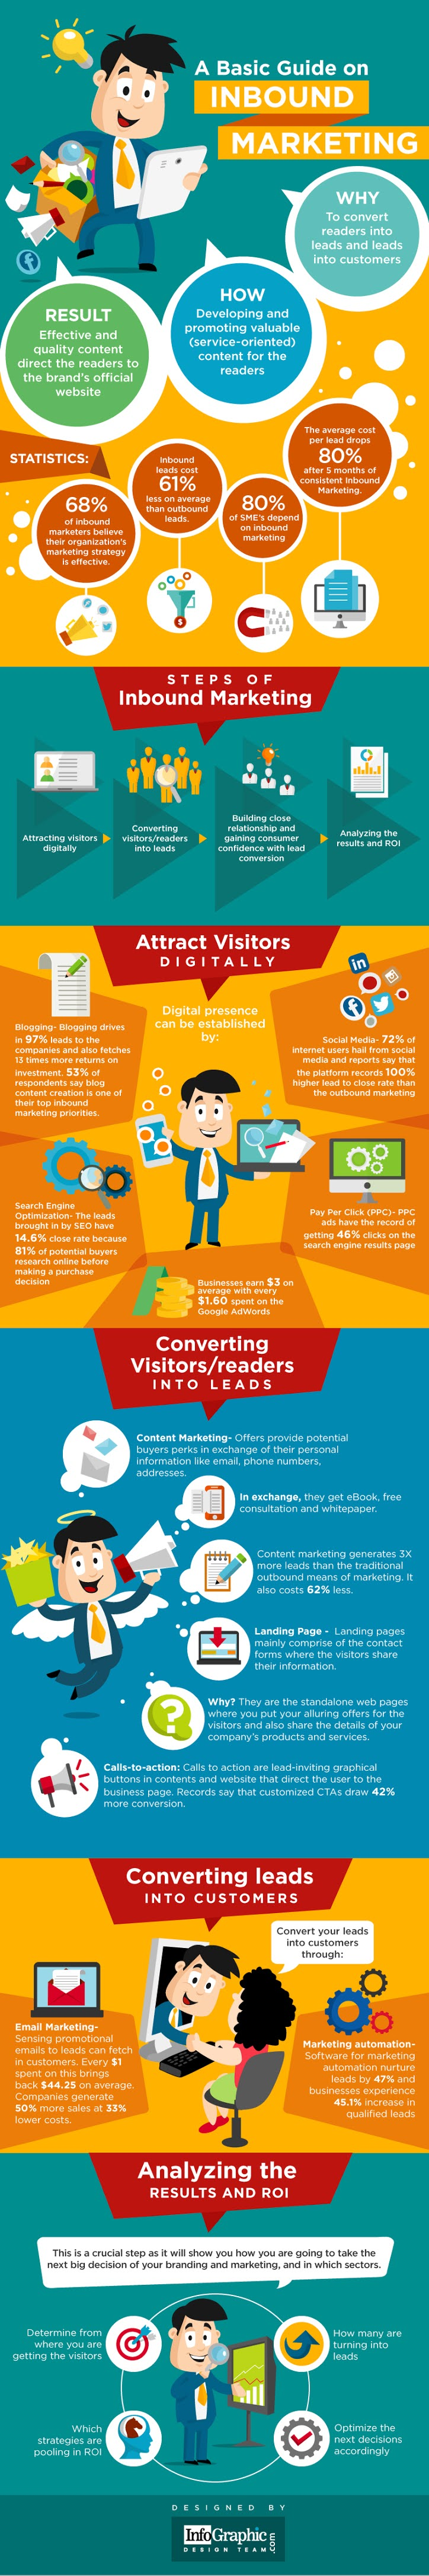 A Basic Guide On Inbound Marketing #infographic #Inbound Marketing #Marketing